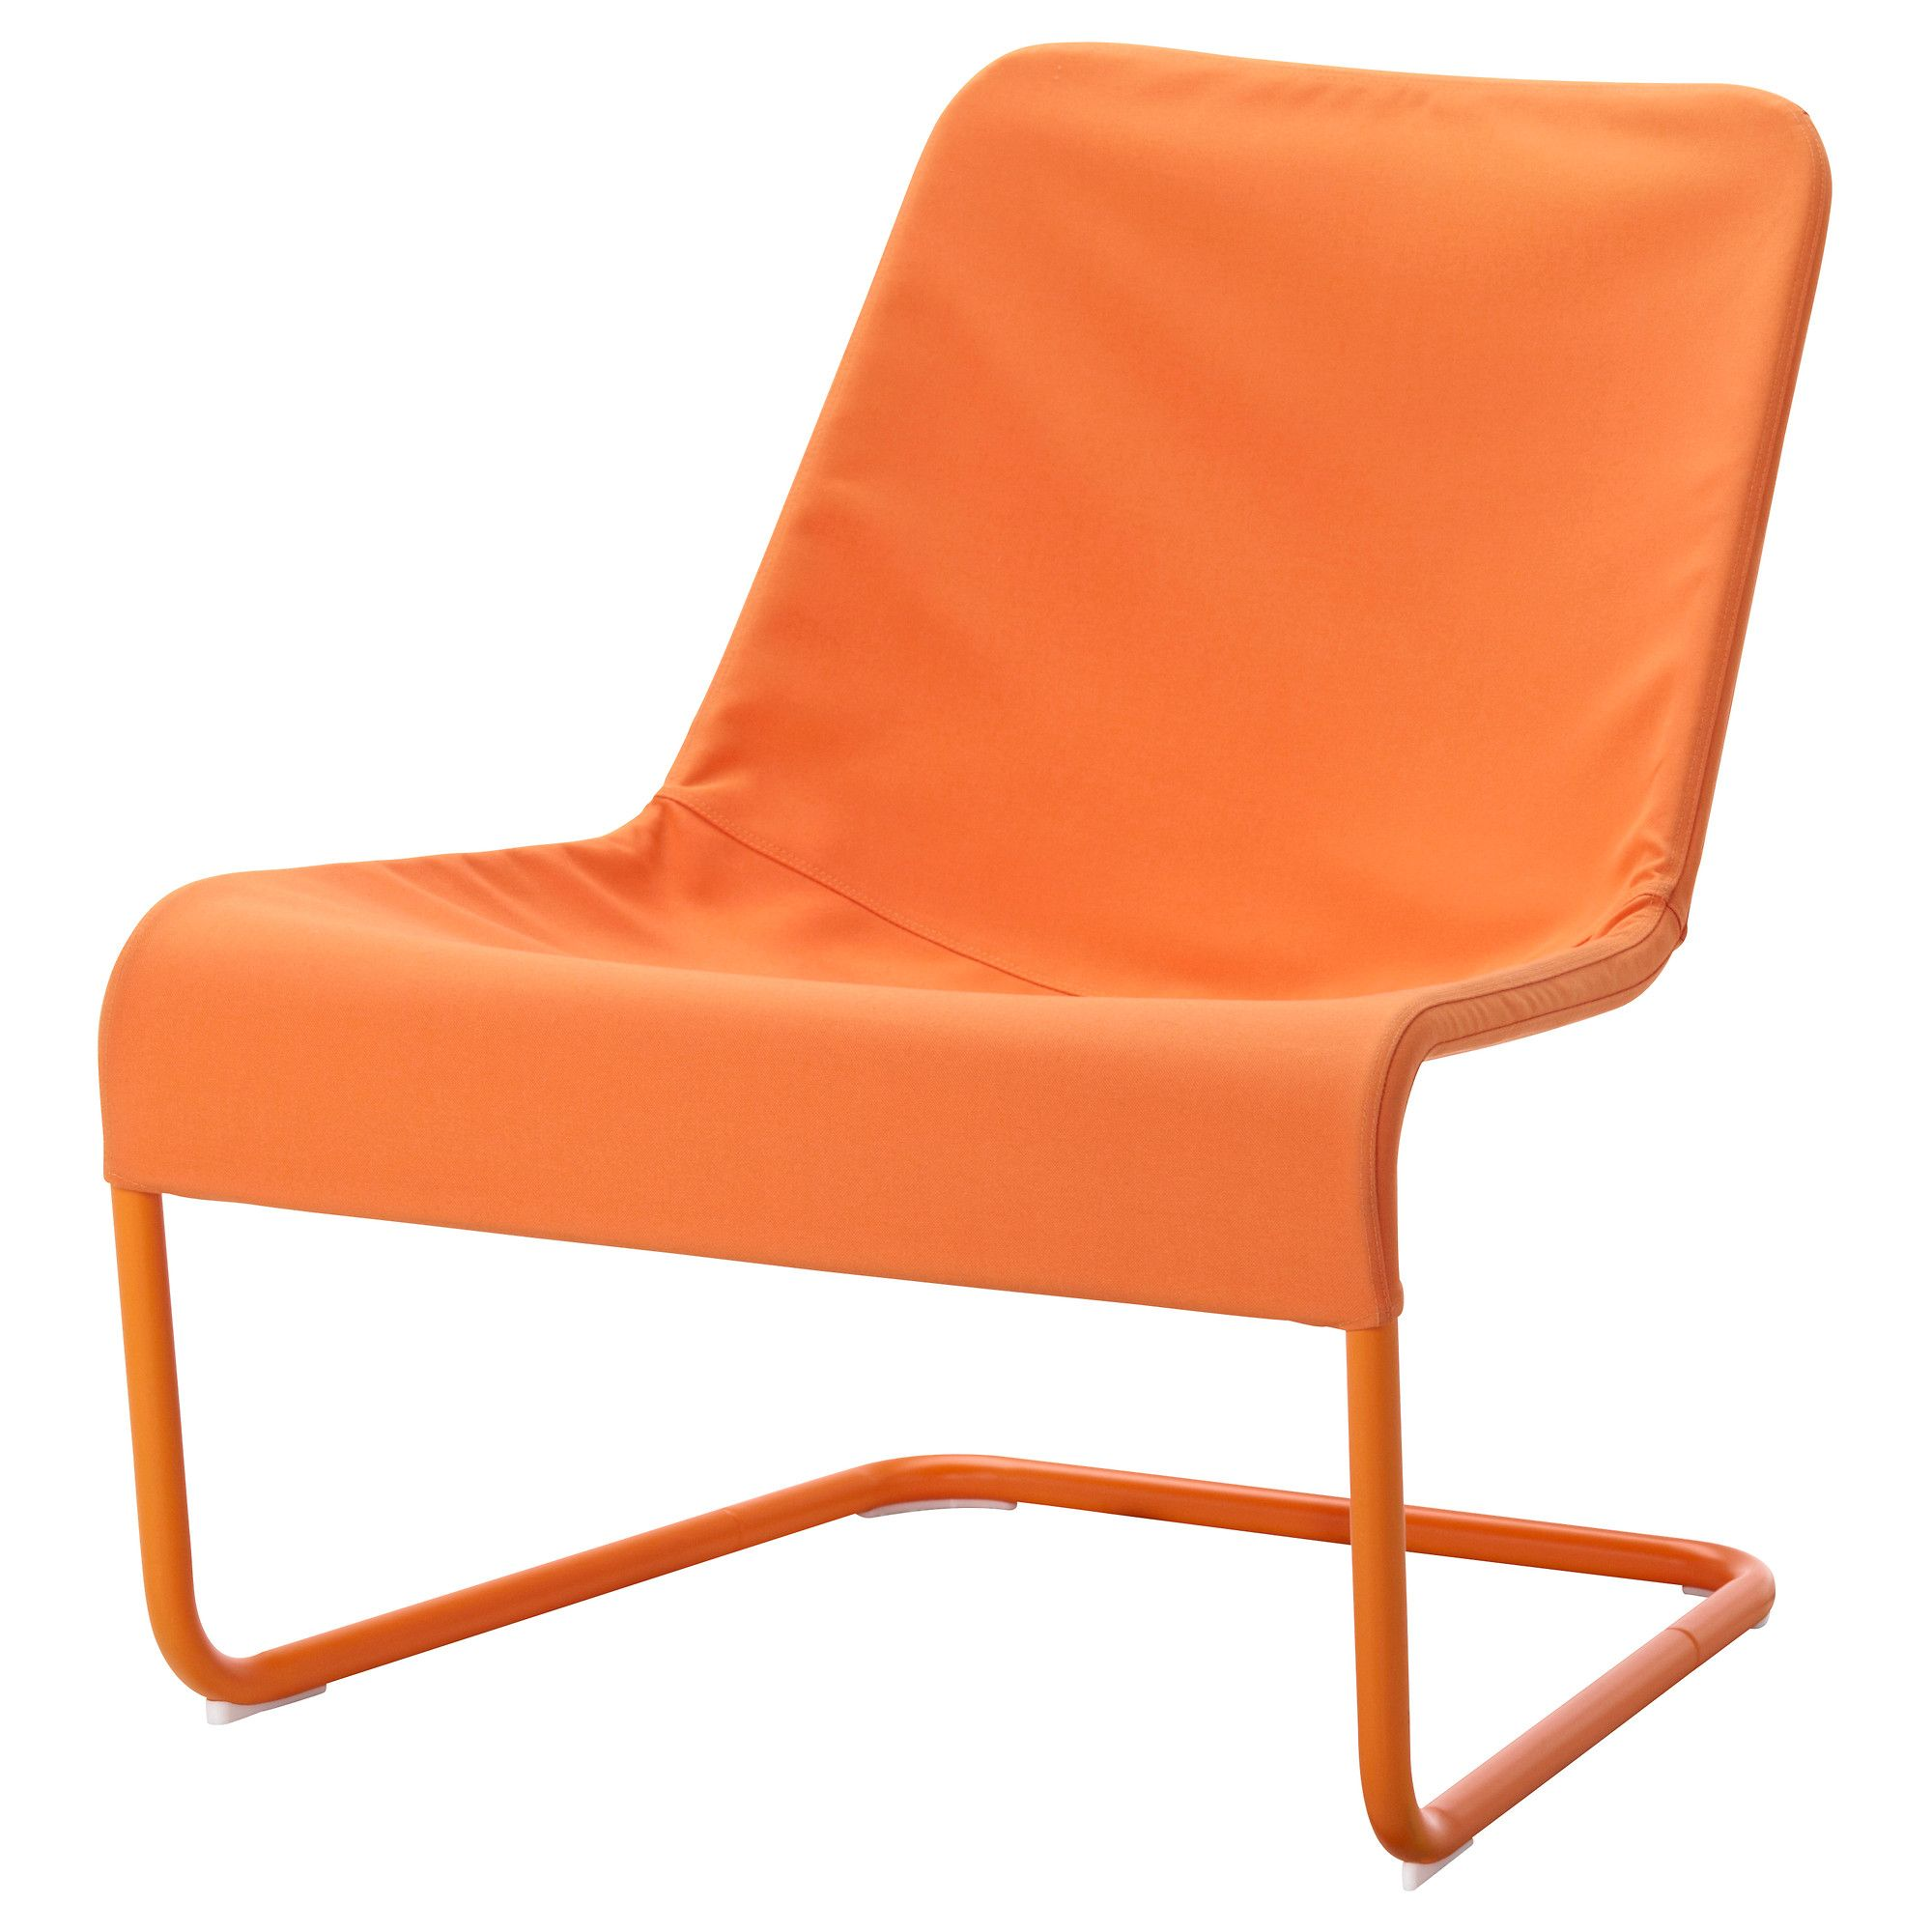 Vintage Ikea Lounge Chair Locksta Easy Chair Orange Ikea 49 99 Rv Restyling